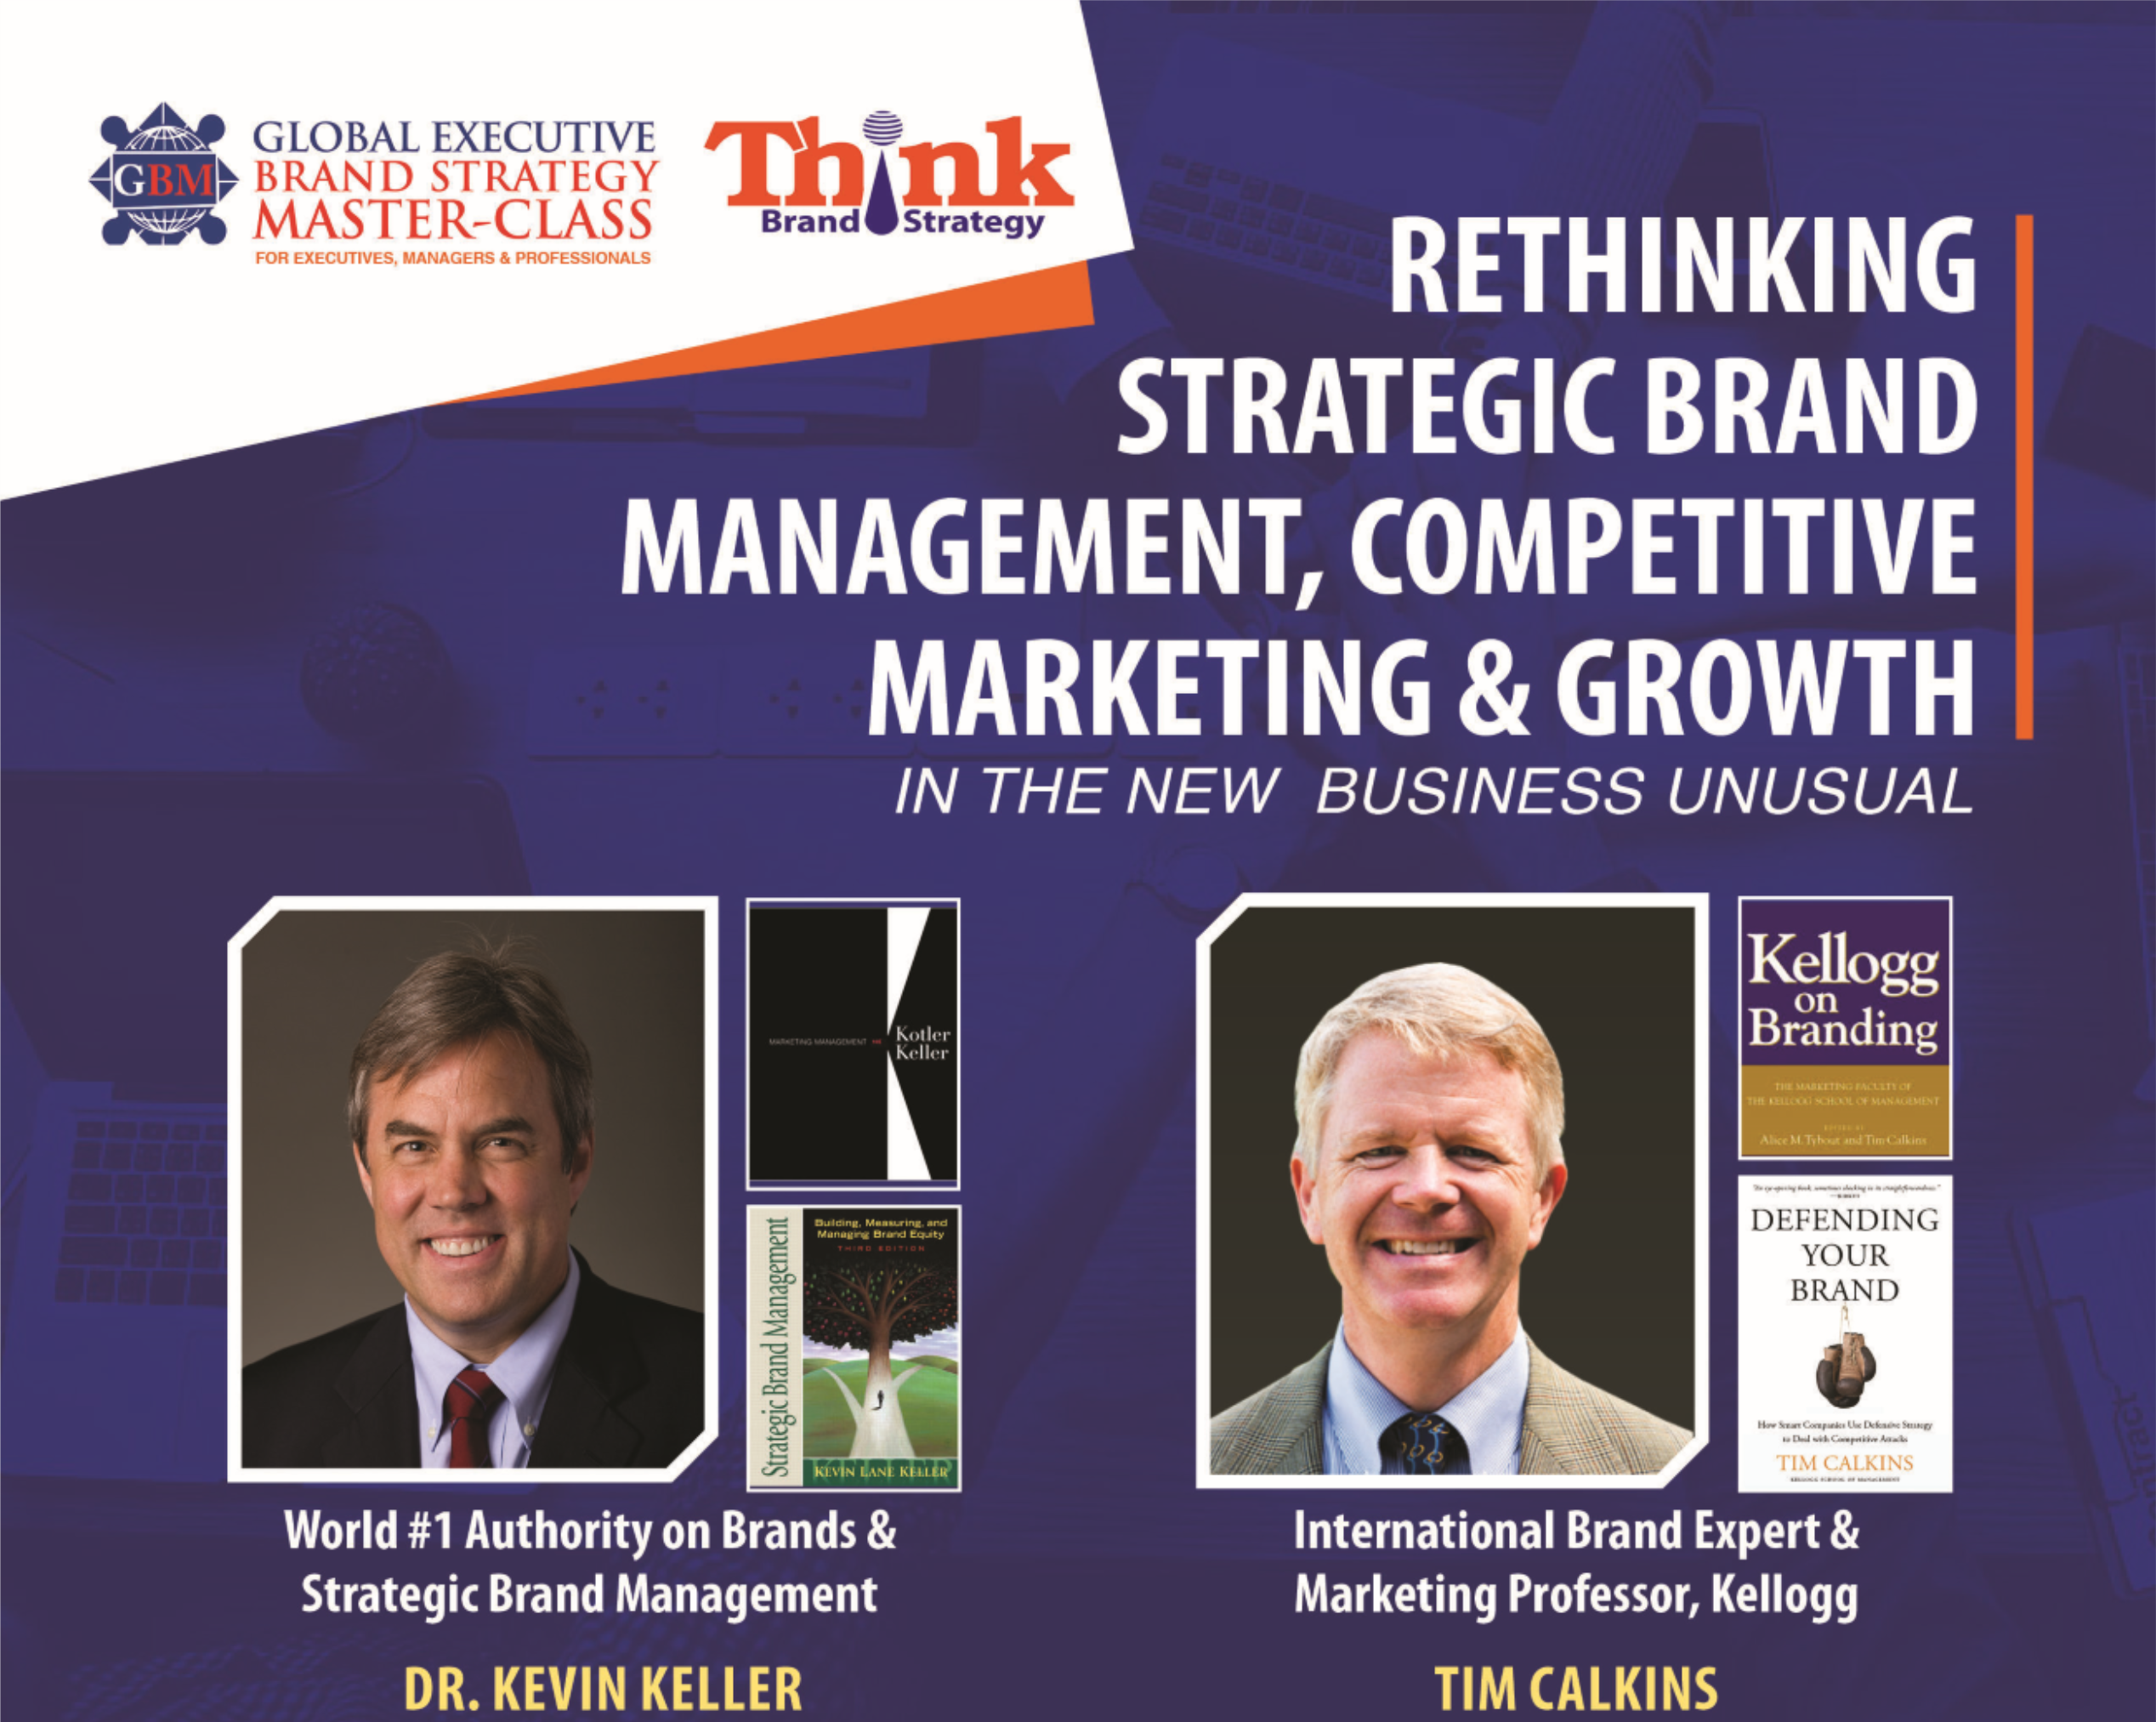 RETHINKING STRATEGIC BRAND MANAGEMENT, COMPETITIVE MARKETING & GROWTH IN THE NEW BUSINESS UNUSUAL